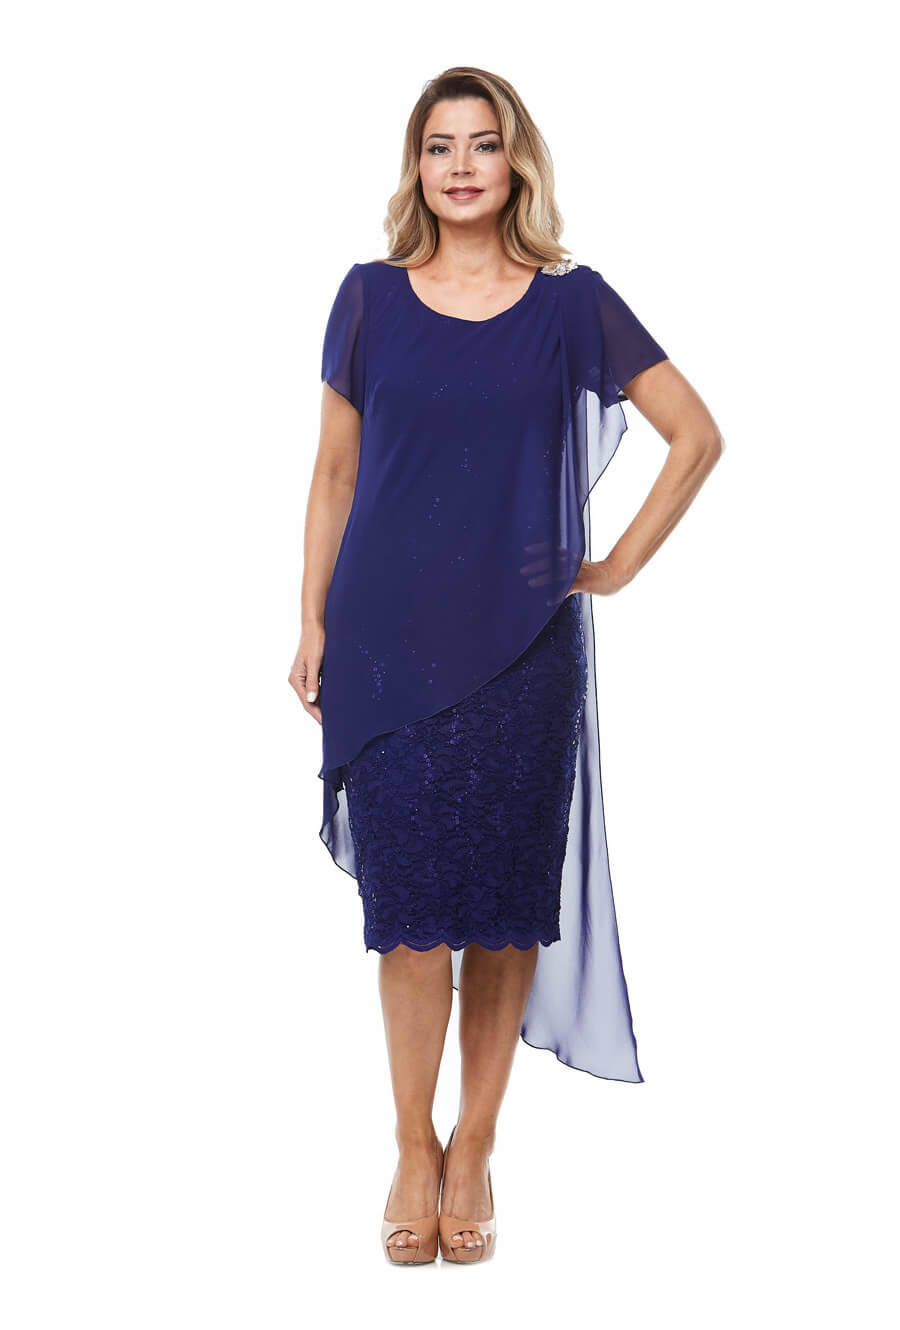 Stretch embroidered sequin cocktaildress with scallop hemline & asymmetrical chiffon overlay